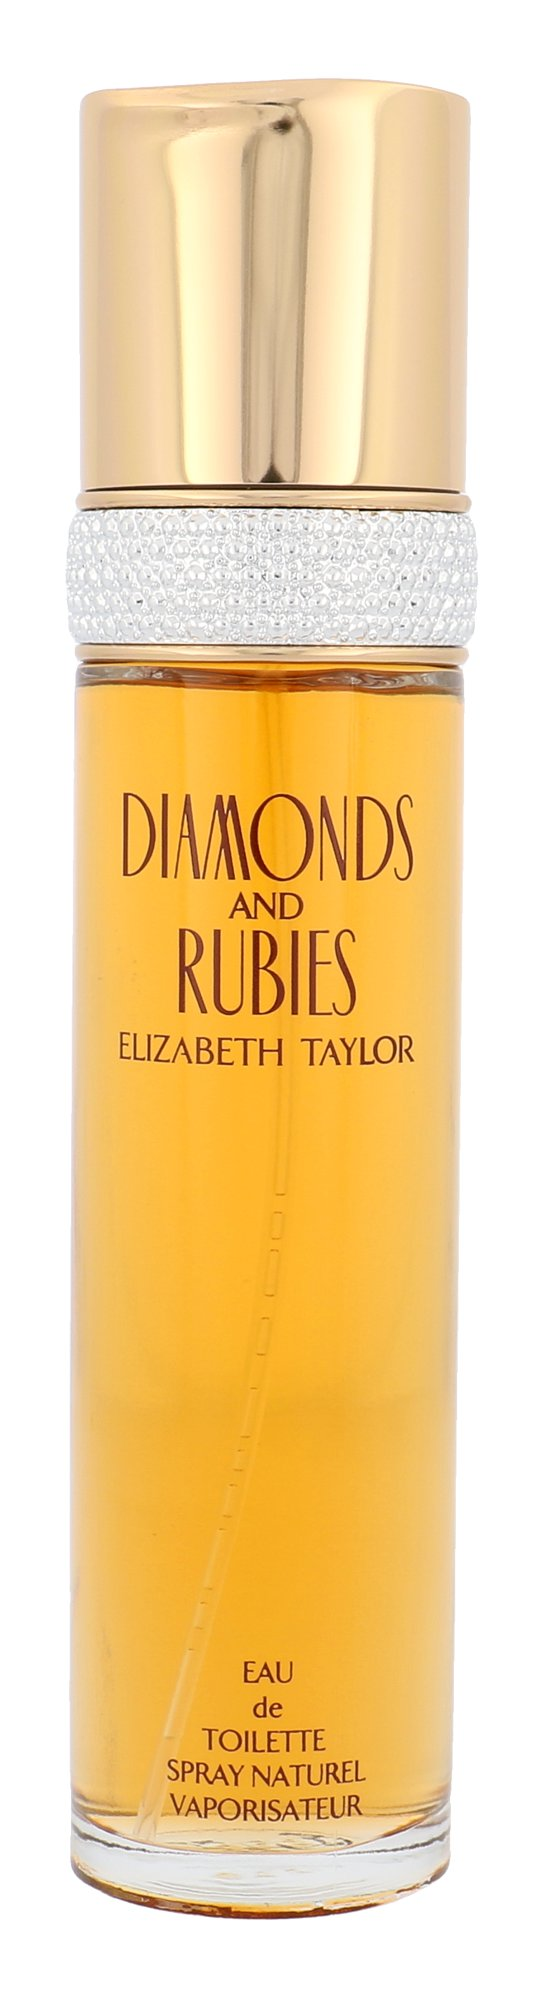 Elizabeth Taylor Diamonds and Rubies, Toaletná voda 100ml